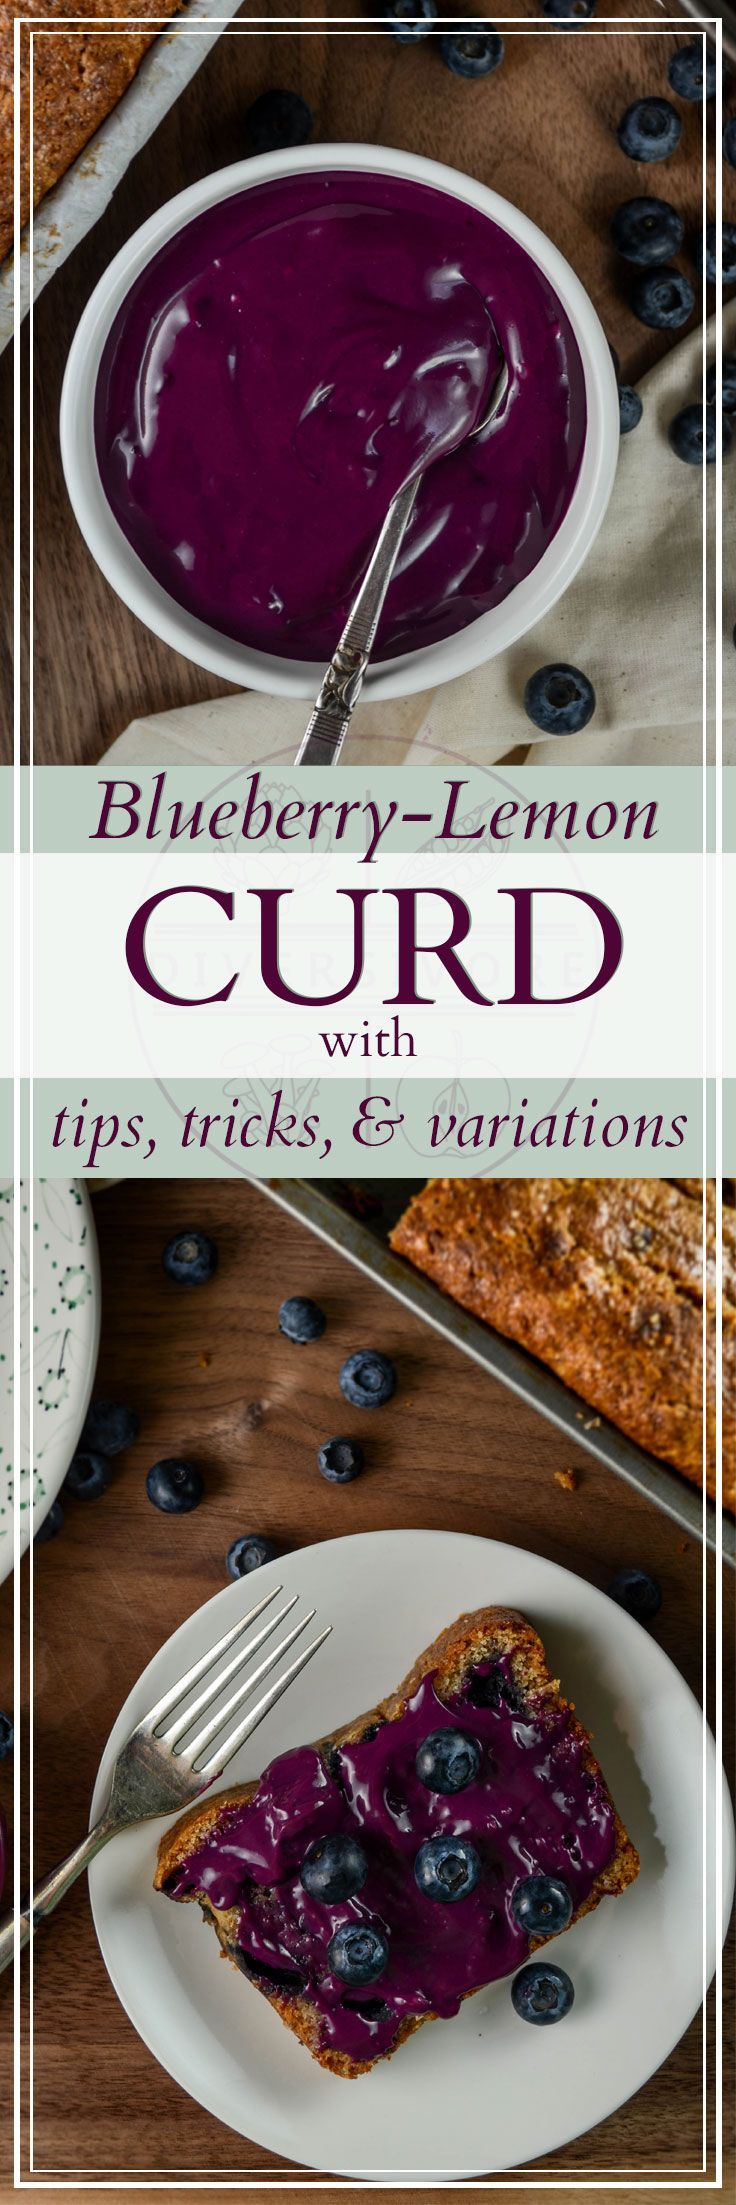 Blueberry Lemon Curd - a delicious and absolutely stunning dessert that's perfect for filling or topping cakes (or just eating with a spoon). Including both Vitamix and stove-top instructions. #Sponsored #blueberries #lemoncurd #dessertrecipes